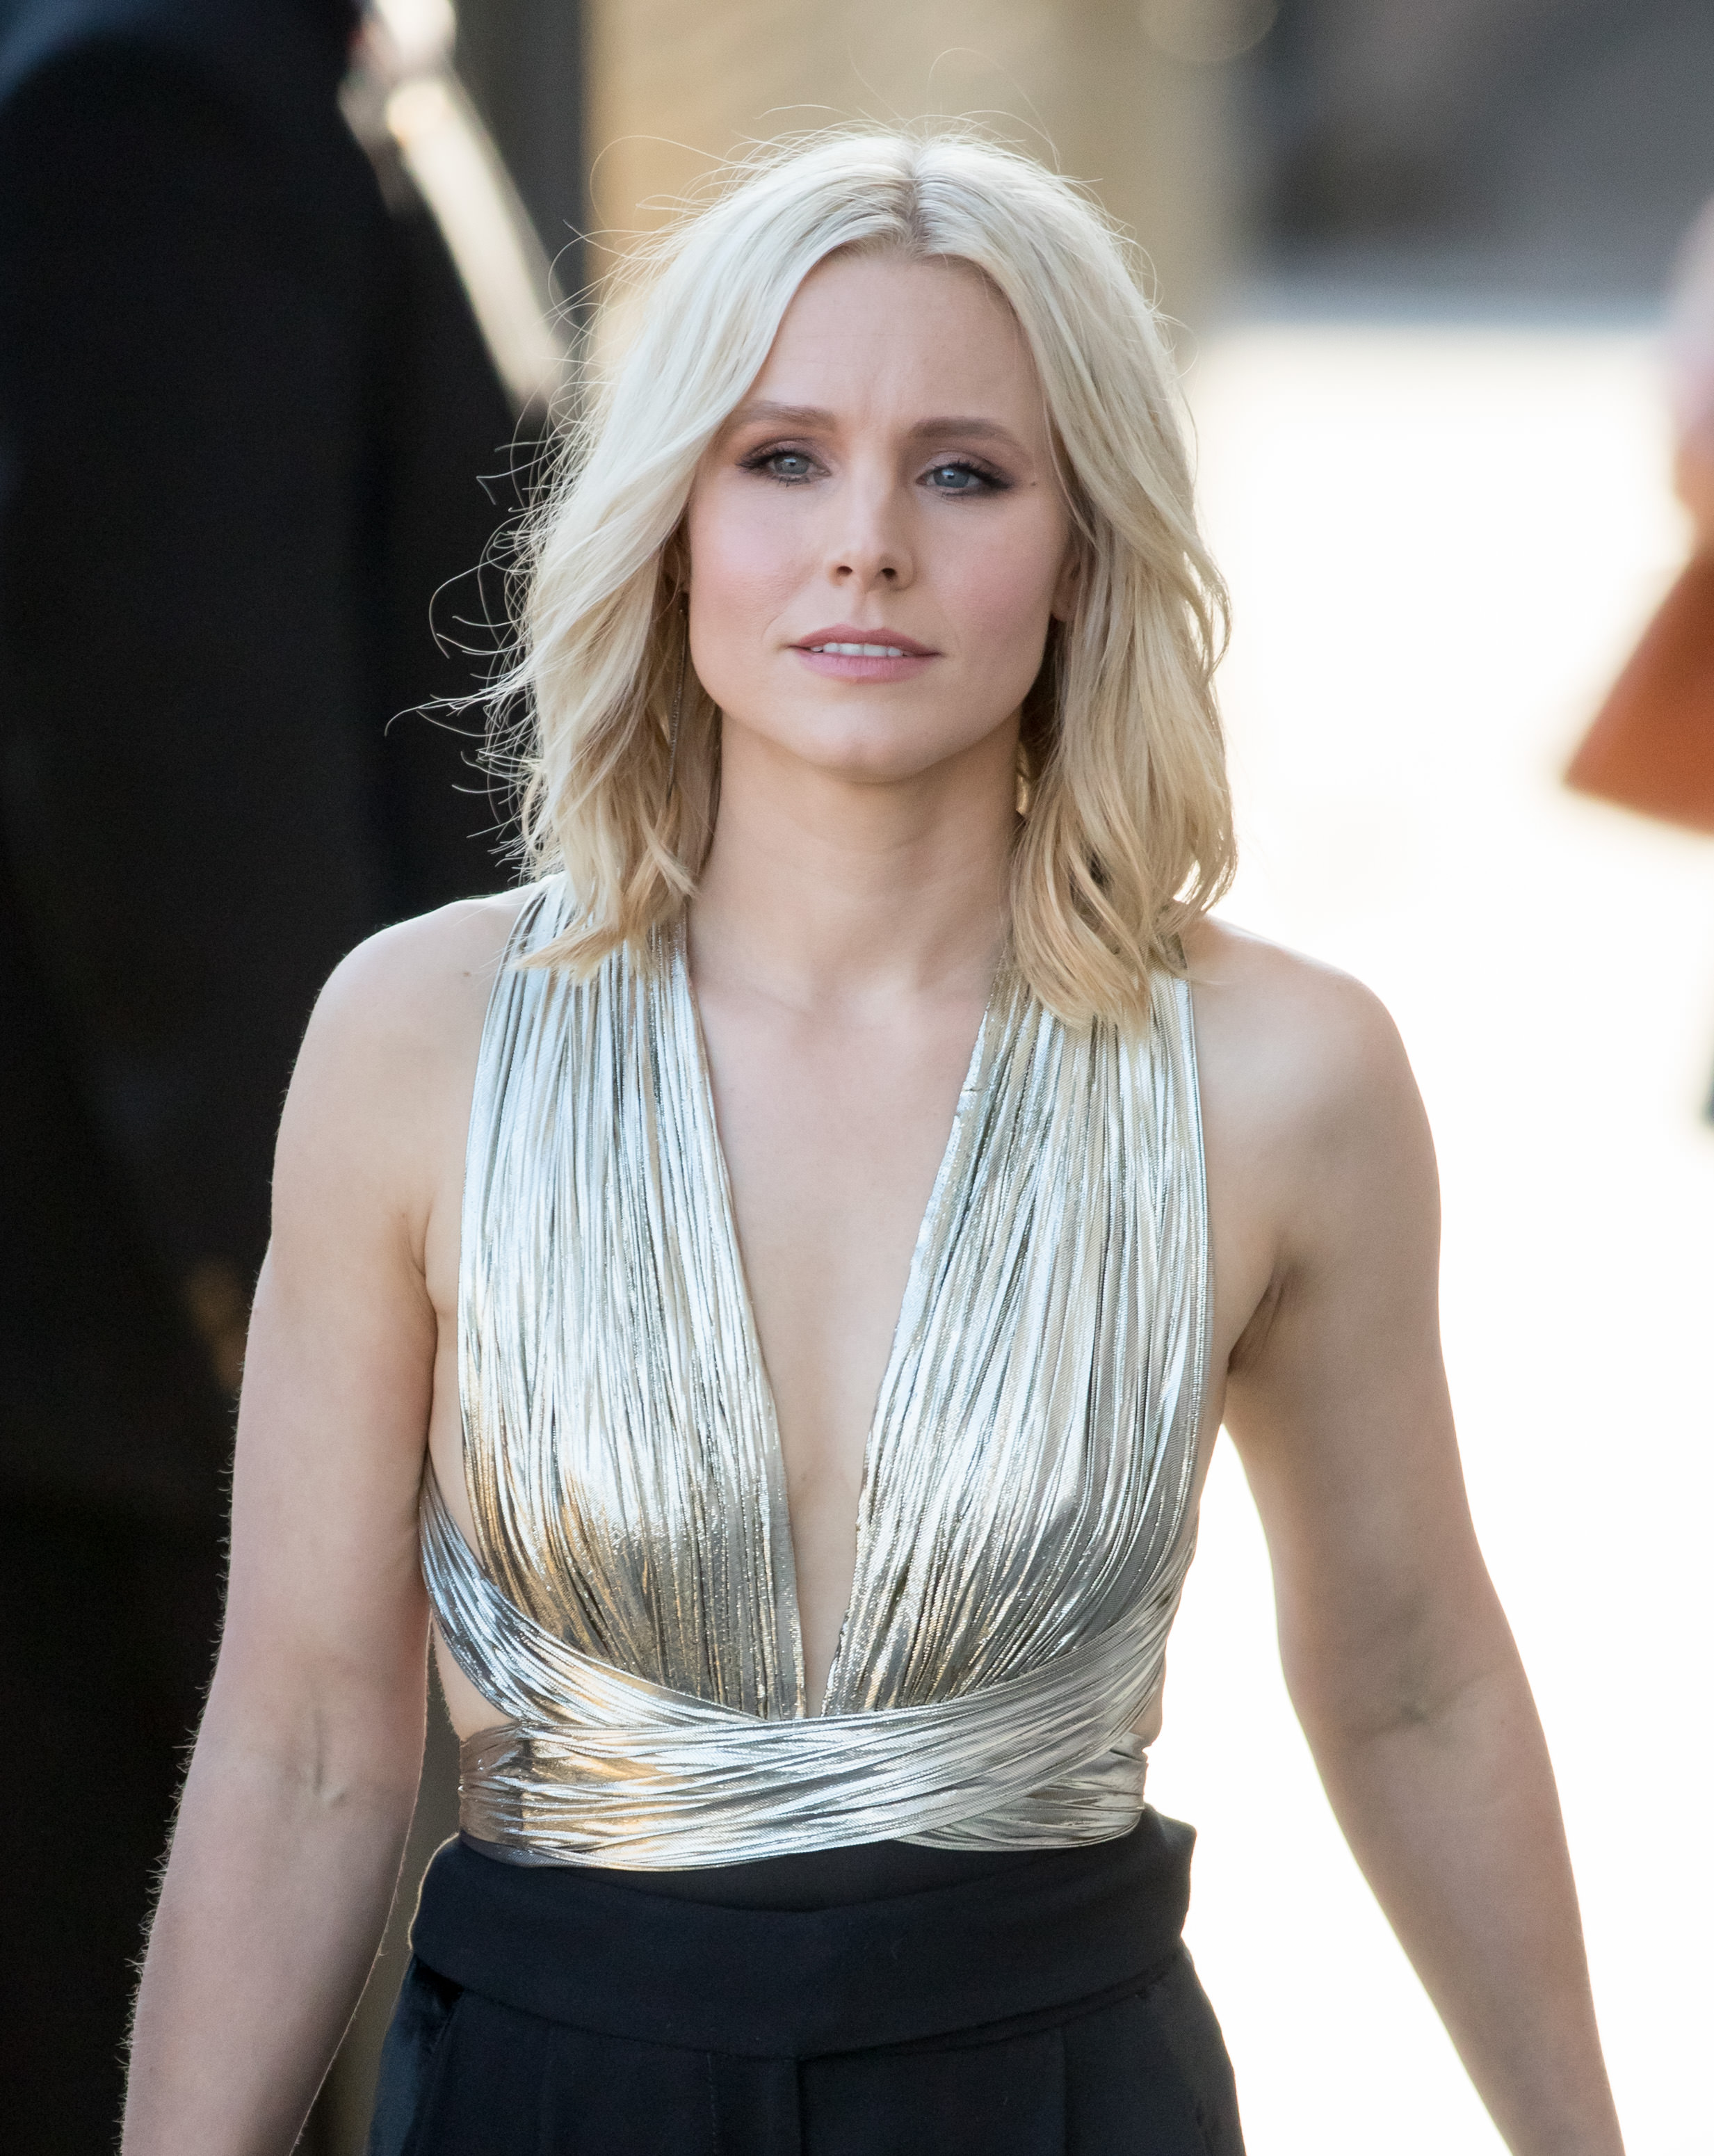 Forum on this topic: Ruth McDevitt, kristen-bell/